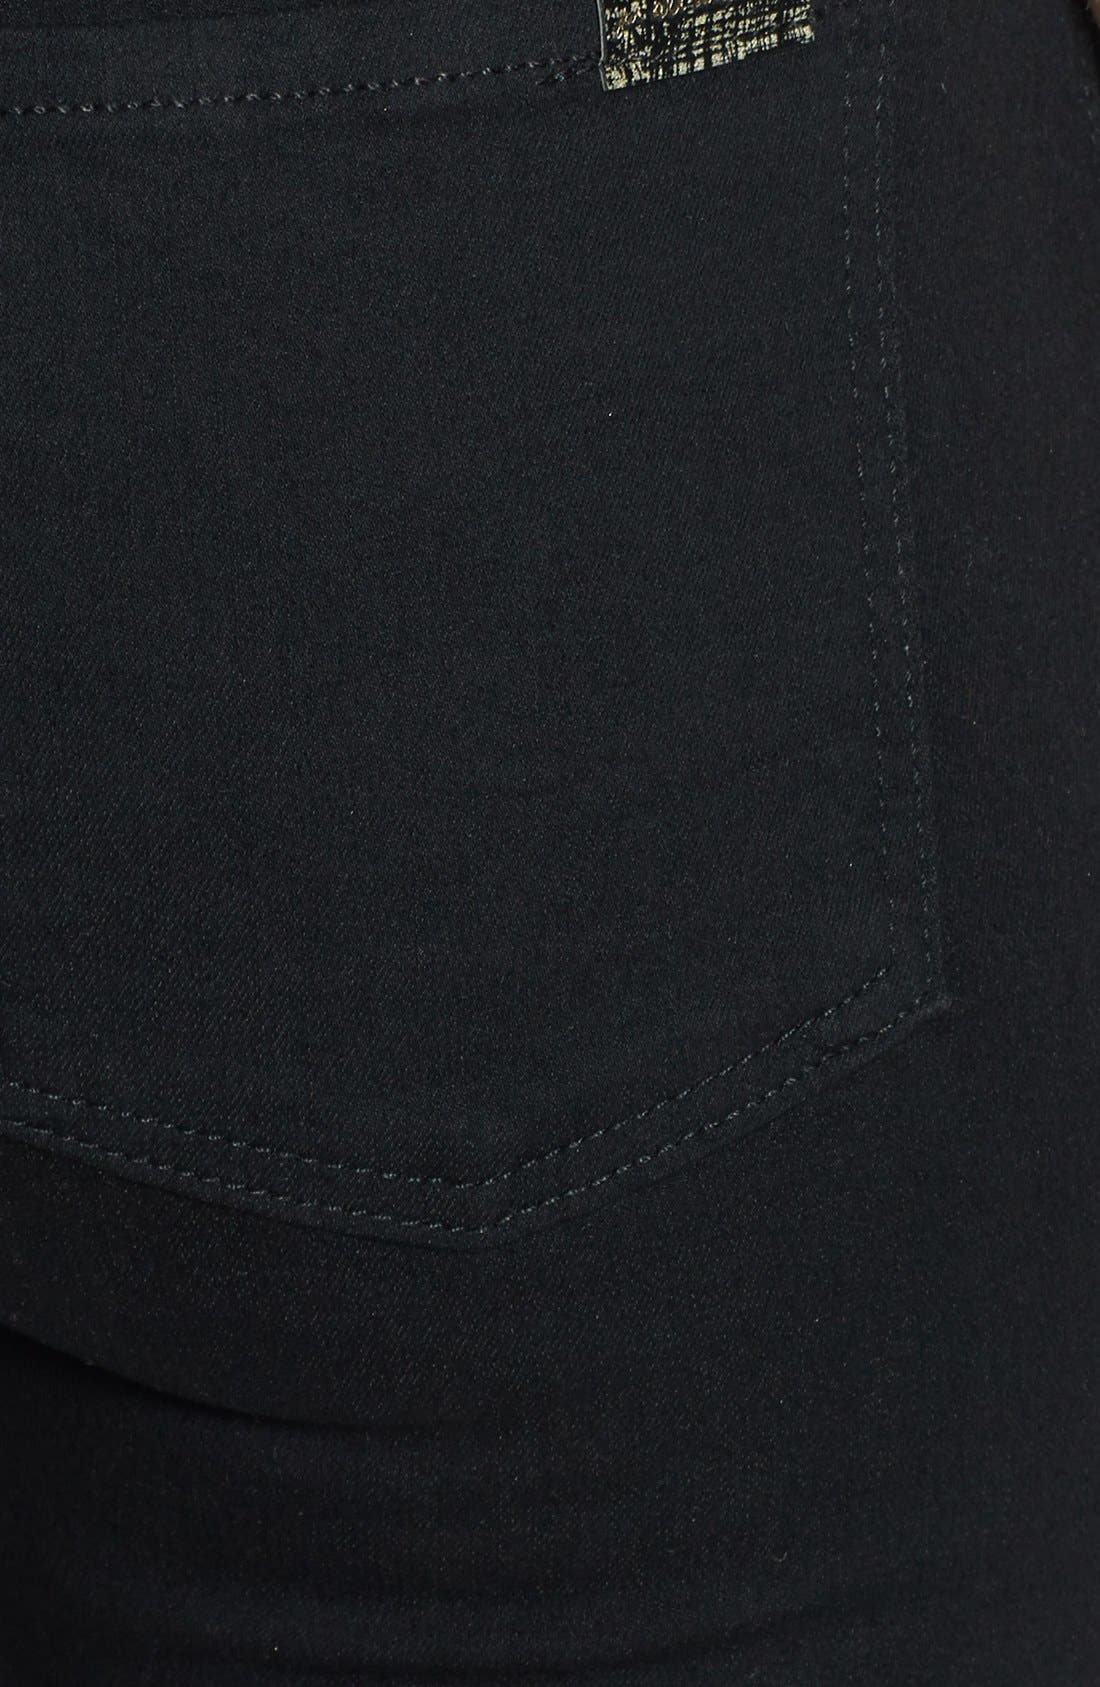 Alternate Image 3  - 7 For All Mankind® High Rise Ankle Skinny Jeans (Elasticity Black)